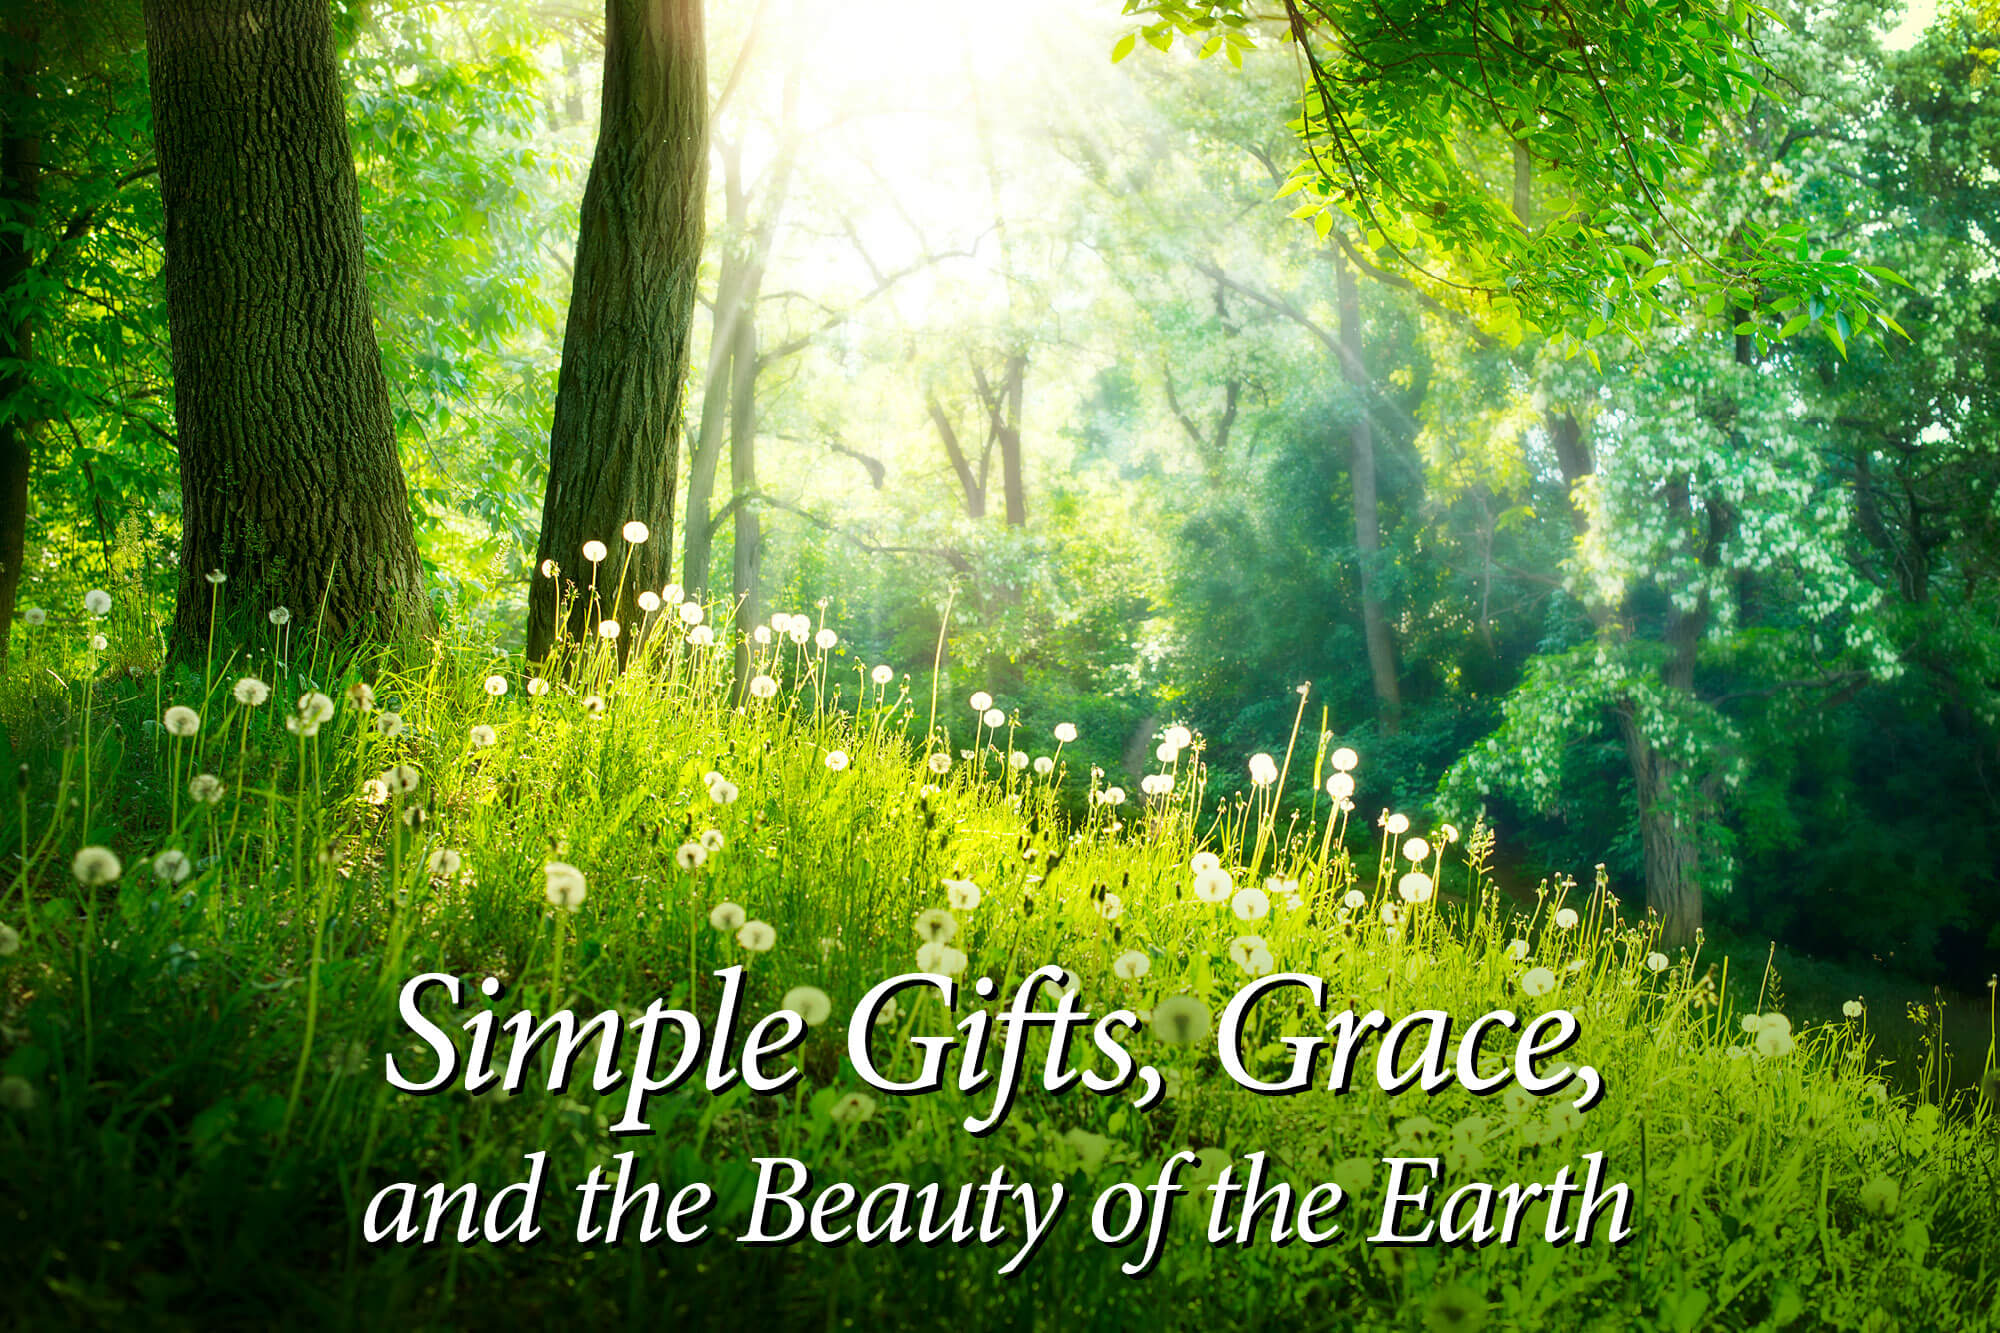 """Photograph of trees and grass with the words """"Simple Gifts, Grace, and the Beauty of the Earth."""""""